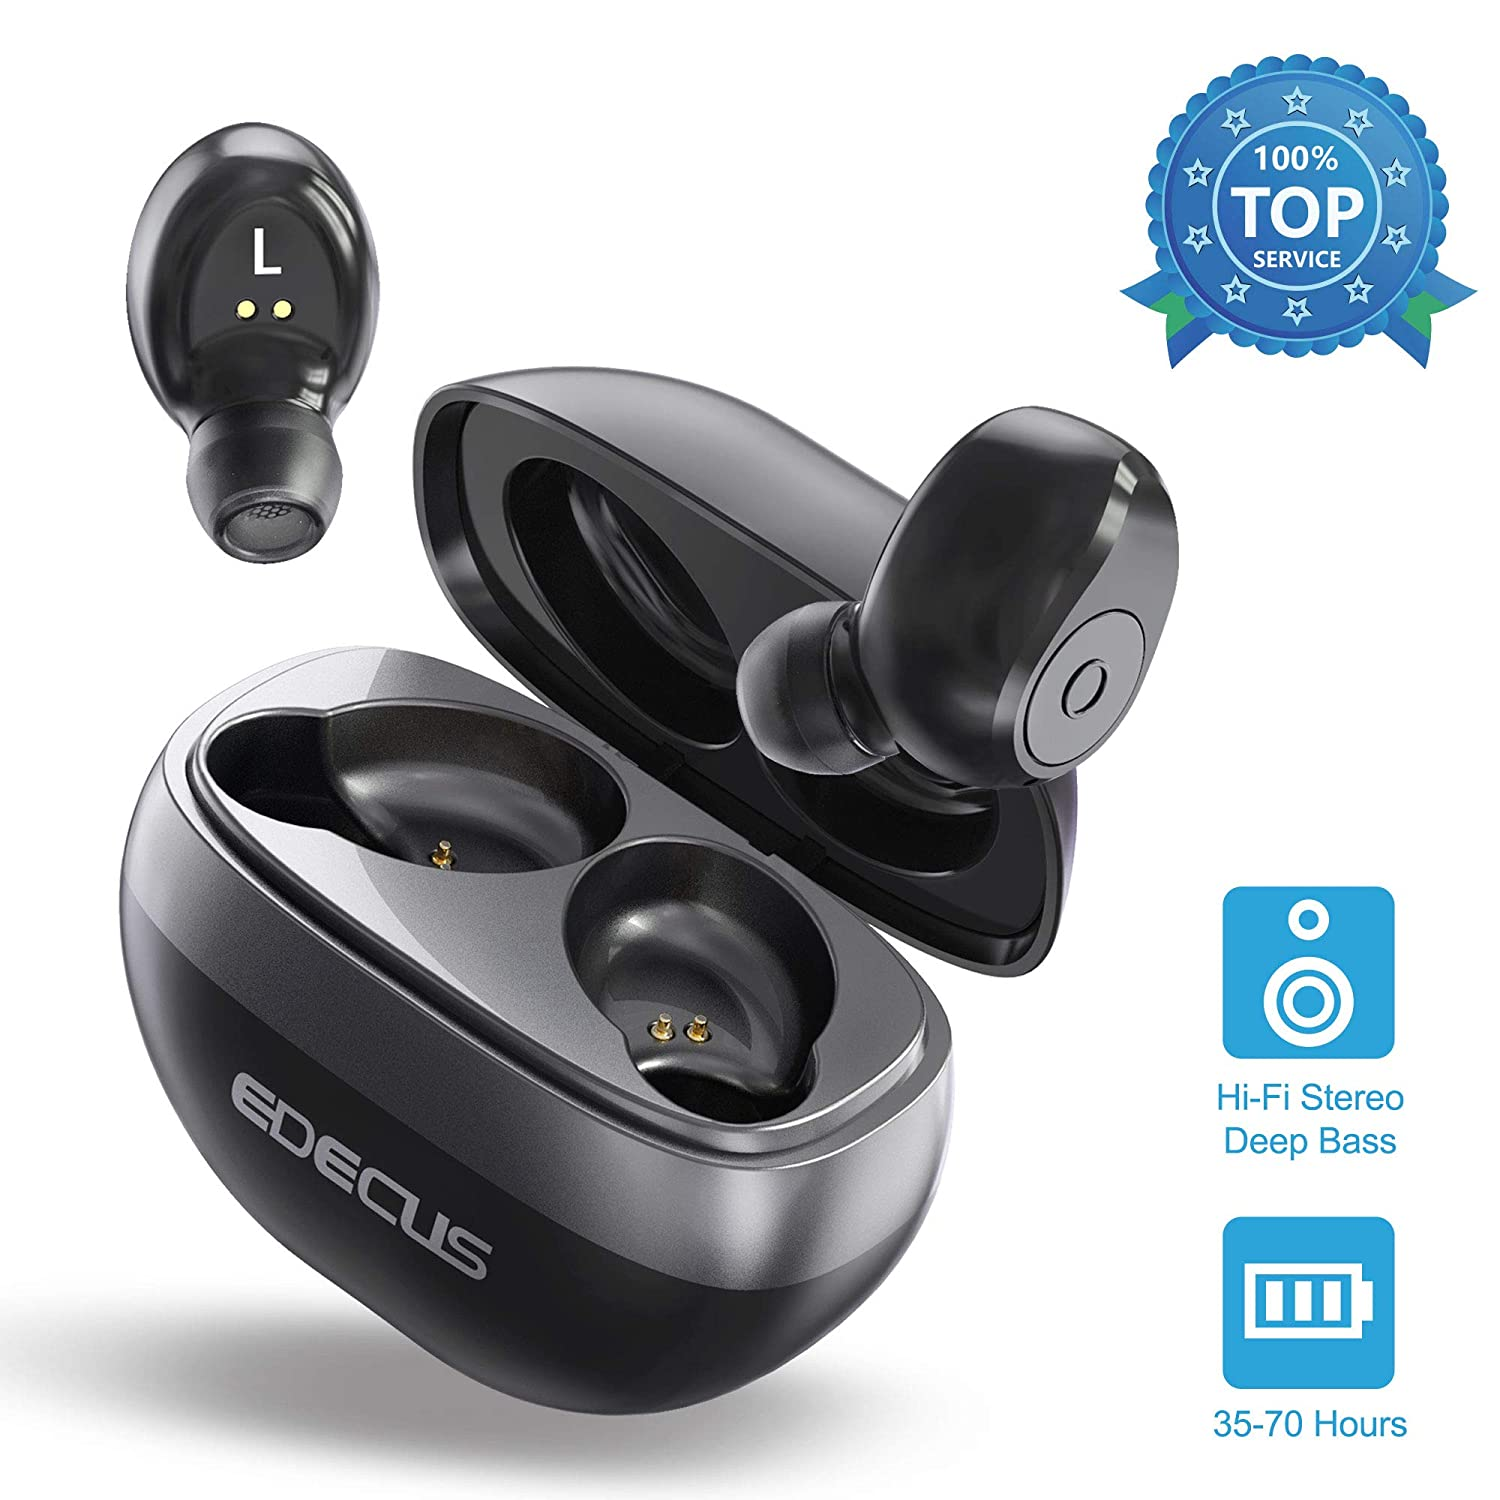 Wireless Earbuds, EDECUS TE1 Bluetooth Earbuds with 35H Playtime, Bluetooth 5.0 Hi-Fi Bass Stereo, Noise Canceling Wireless Headphones, Built-in Mic Sweatproof Bluetooth Headphones with Charging Case